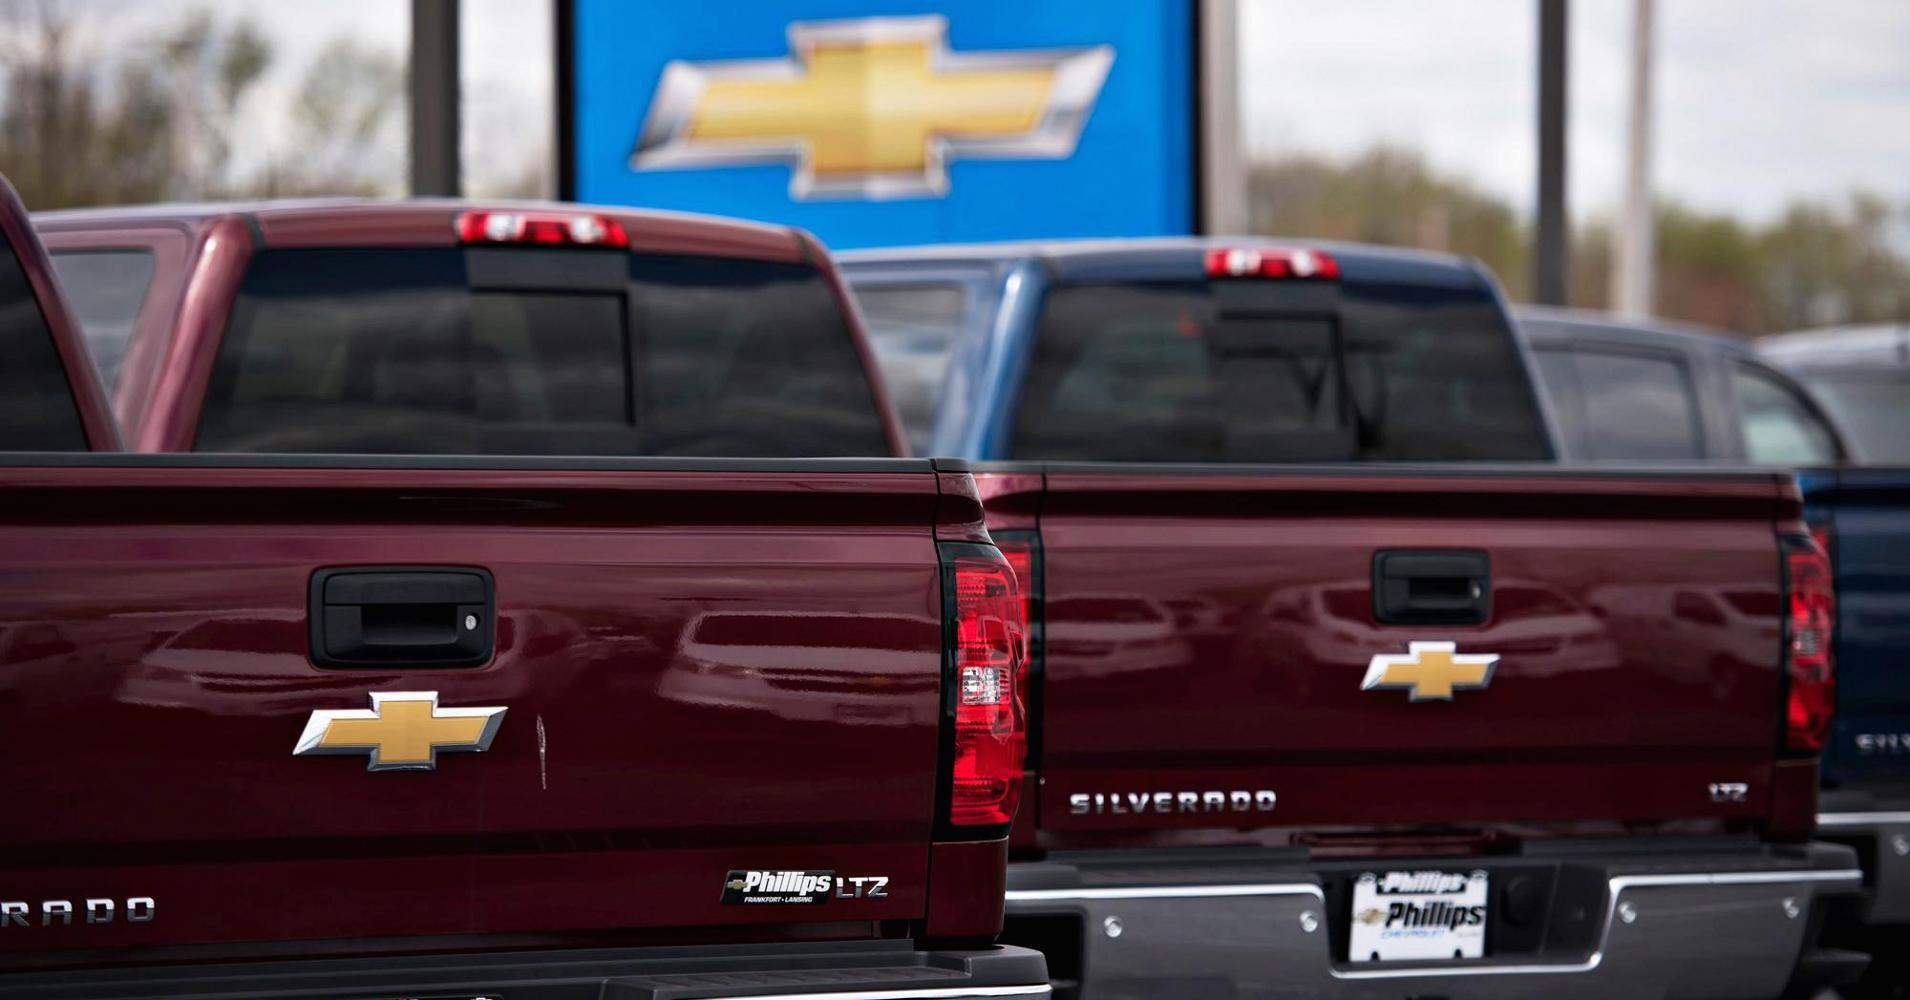 Black Friday wish list: Toys, TVs...and trucks?